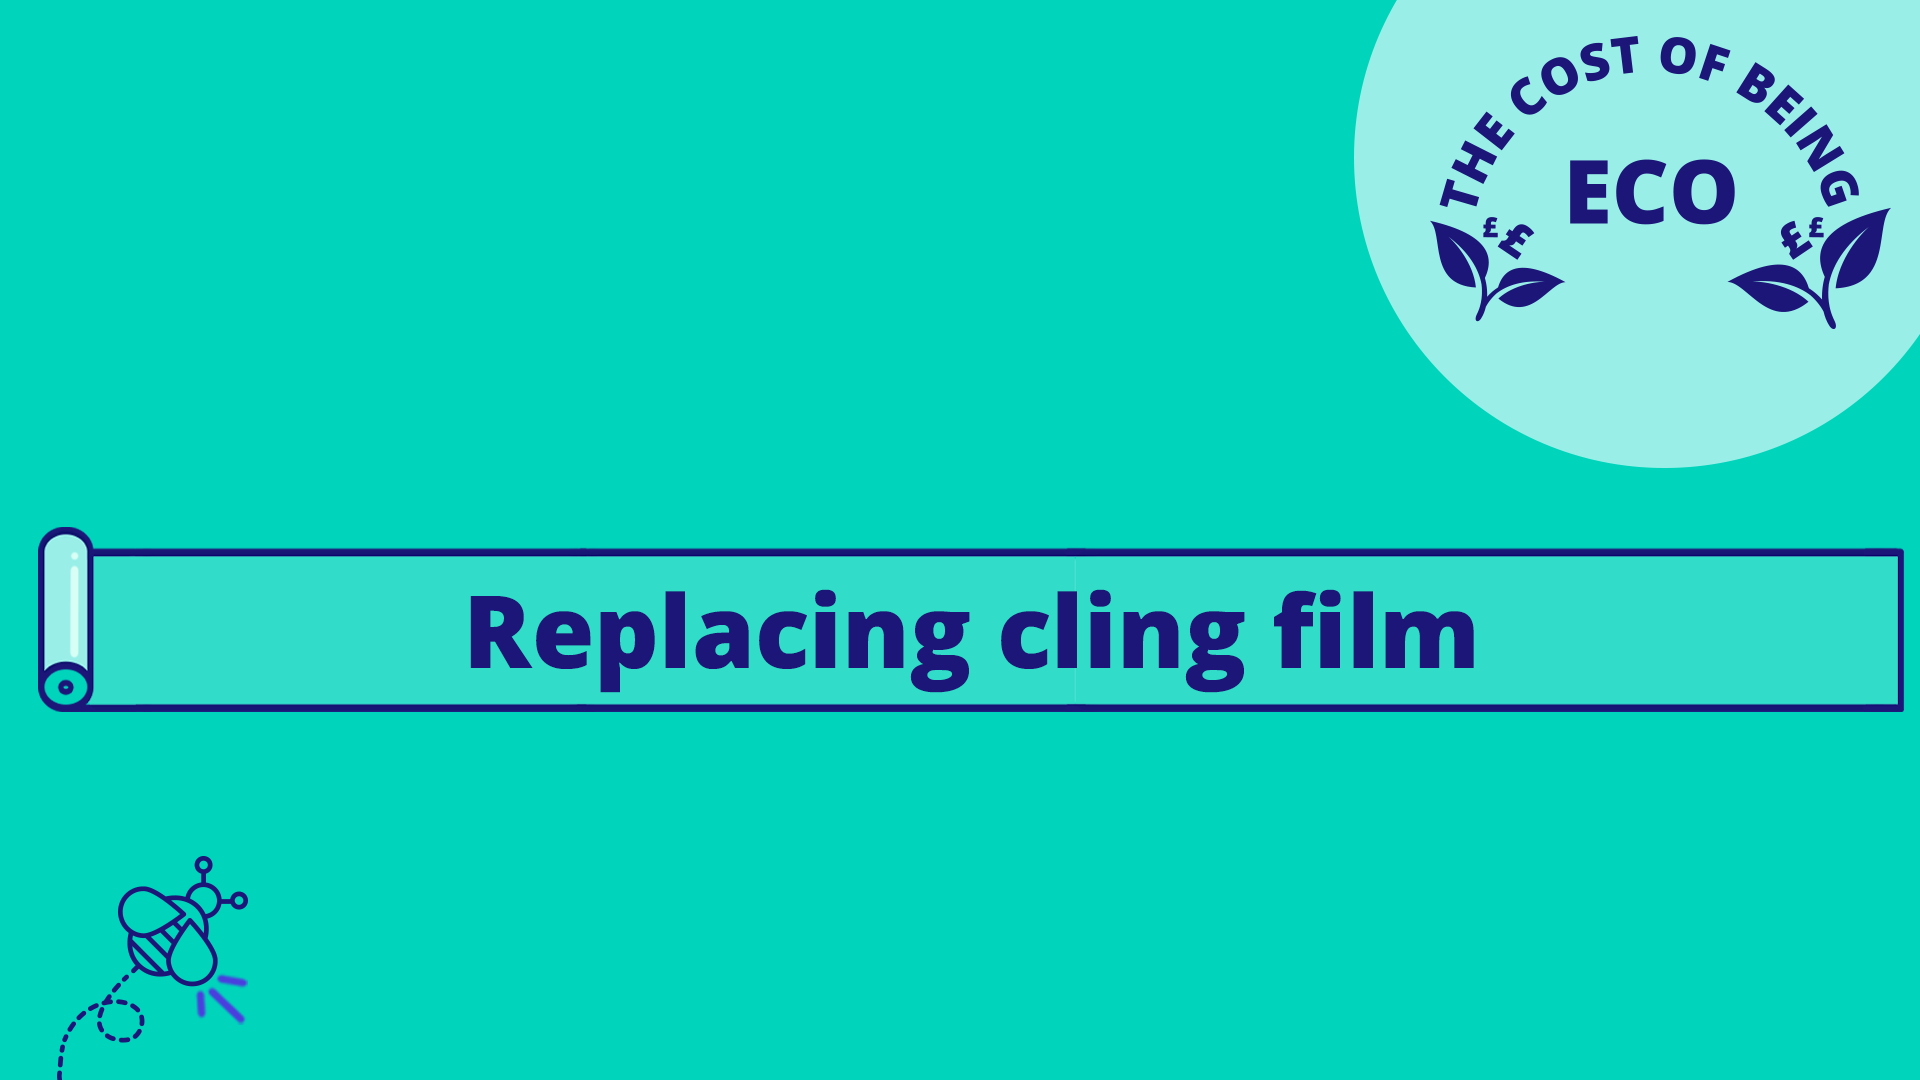 the-cost-of-being-eco-replacing-cling-film